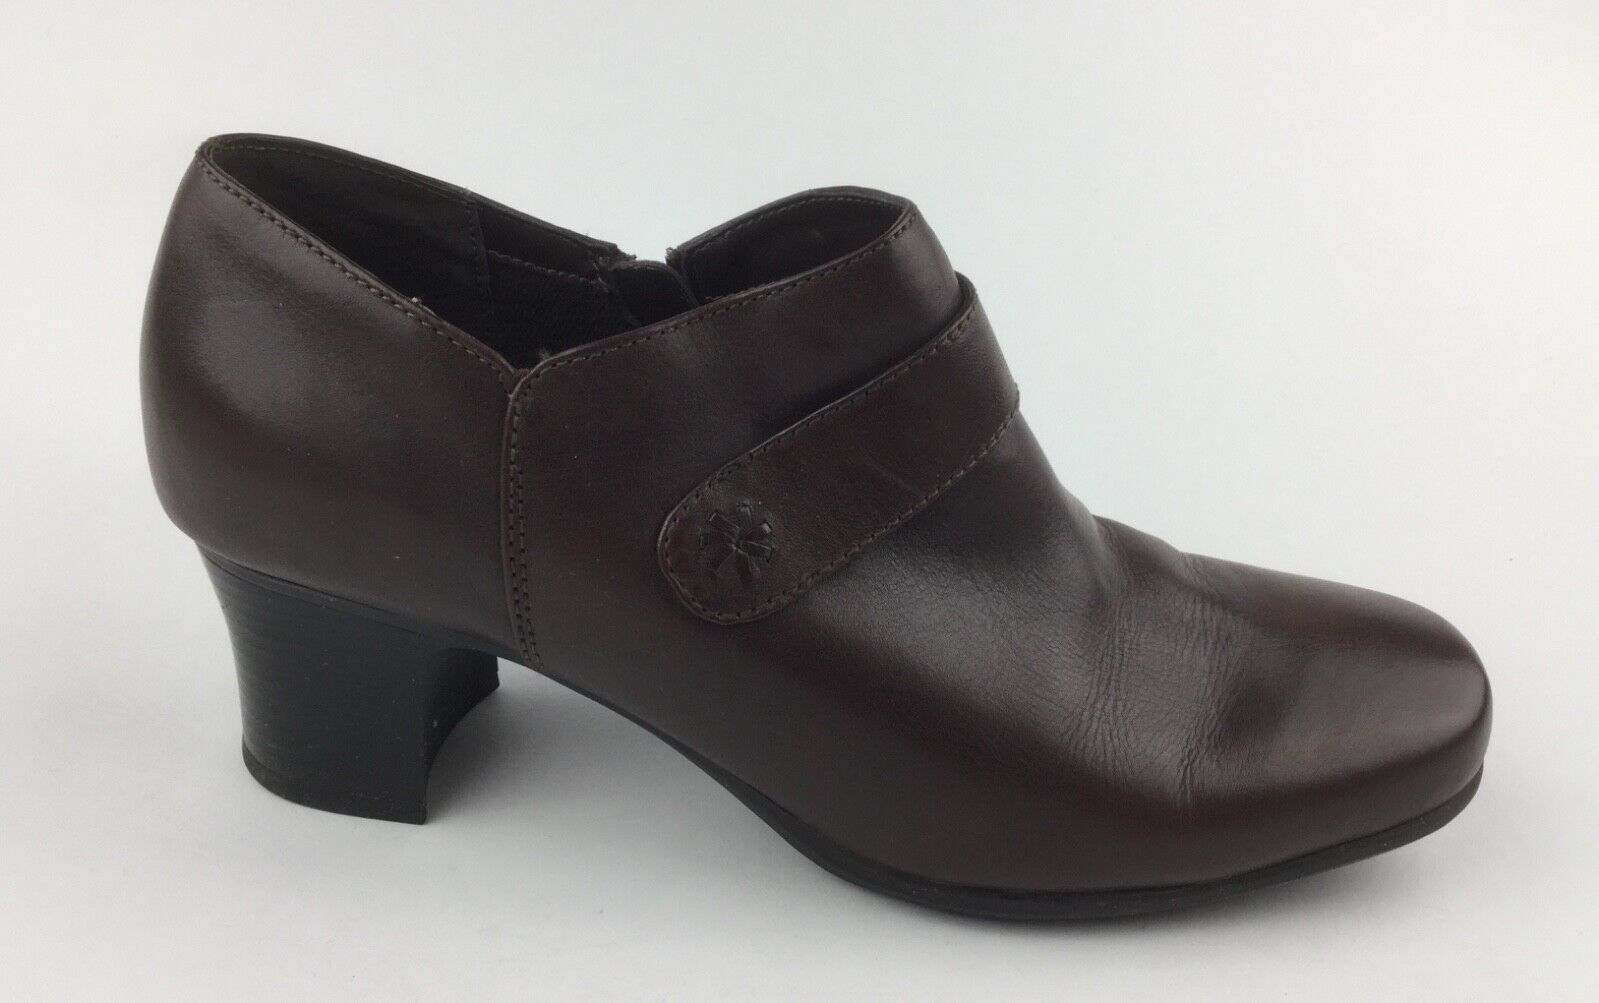 Clarks Womens Brown Leather Ankle Boots Heels Sz US 9